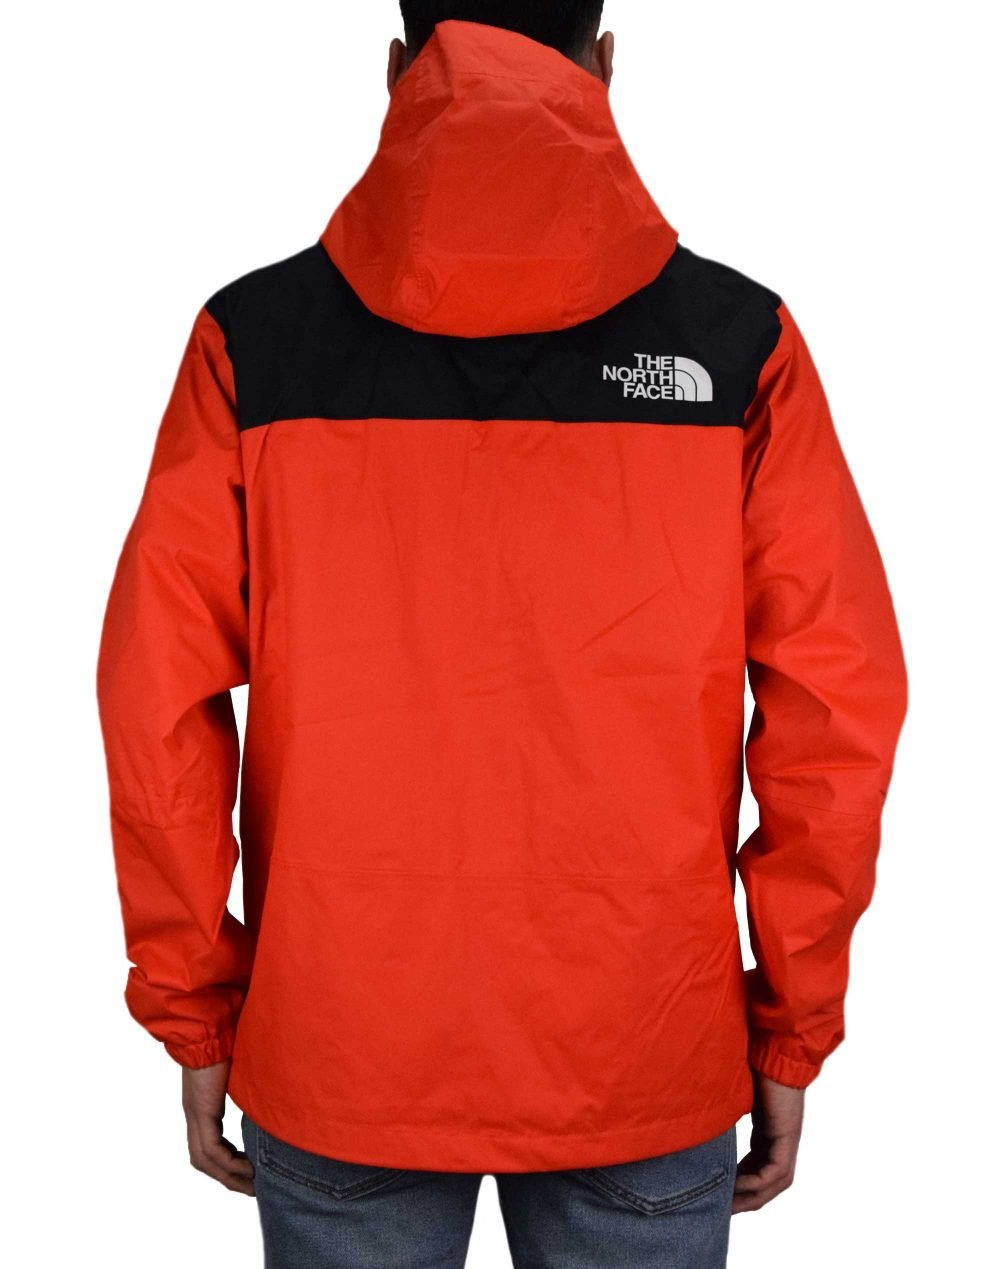 The North Face 1990 Mountain Q Jacket (NF0A2S5115Q1) Fiery Red